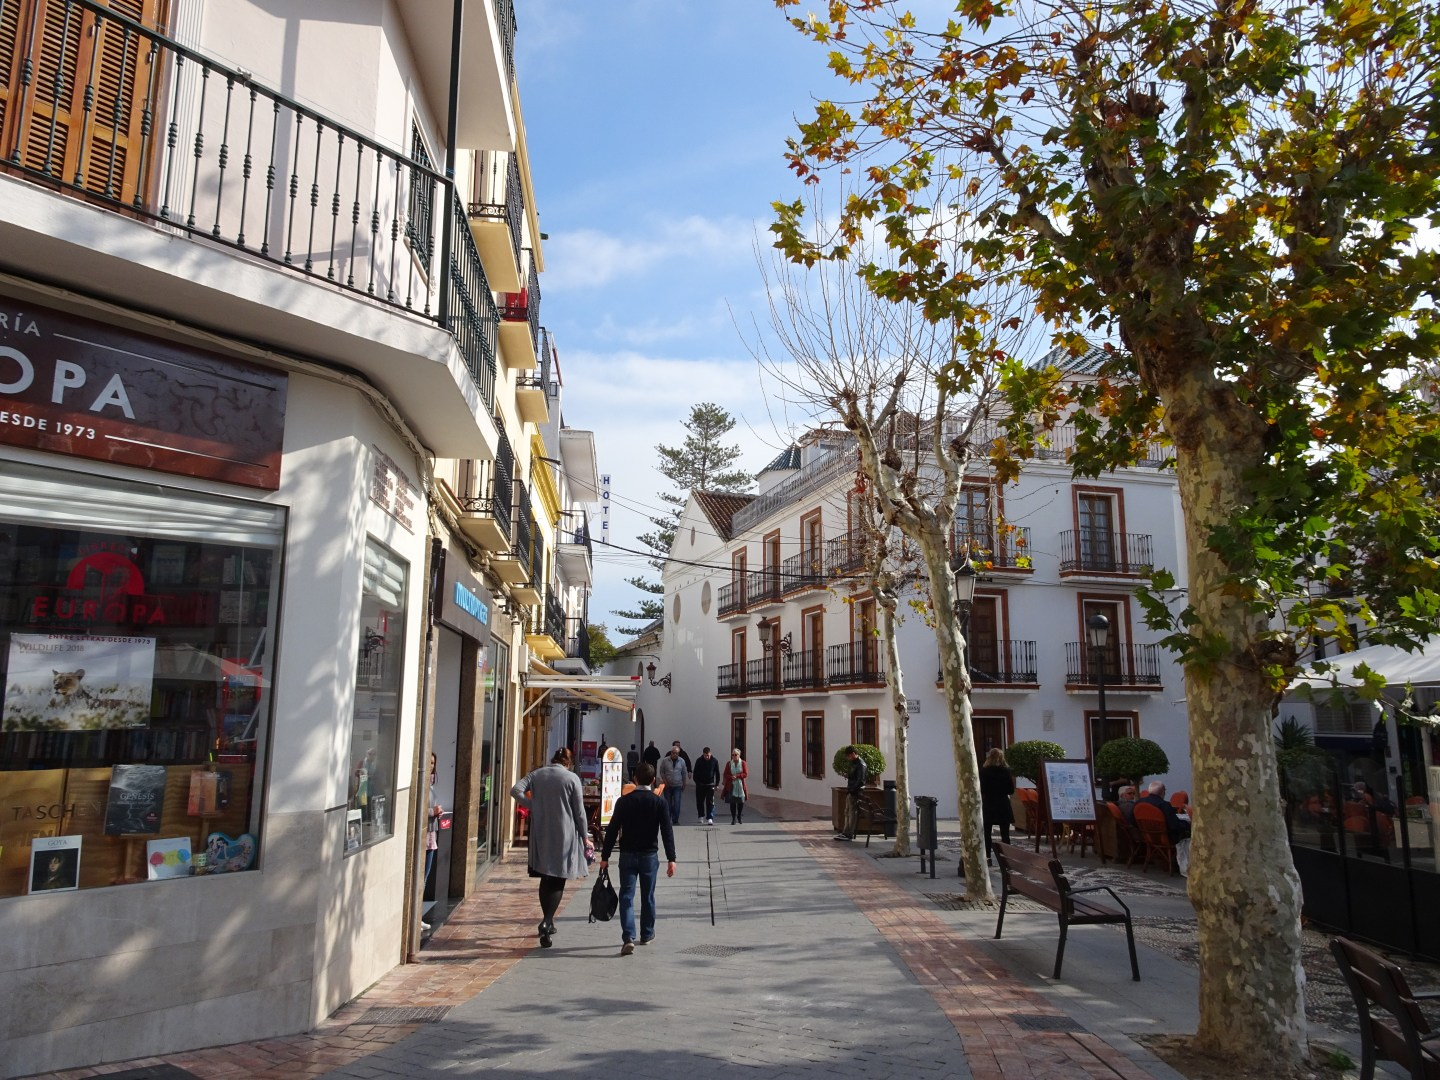 The streets of Nerja in Andalusia